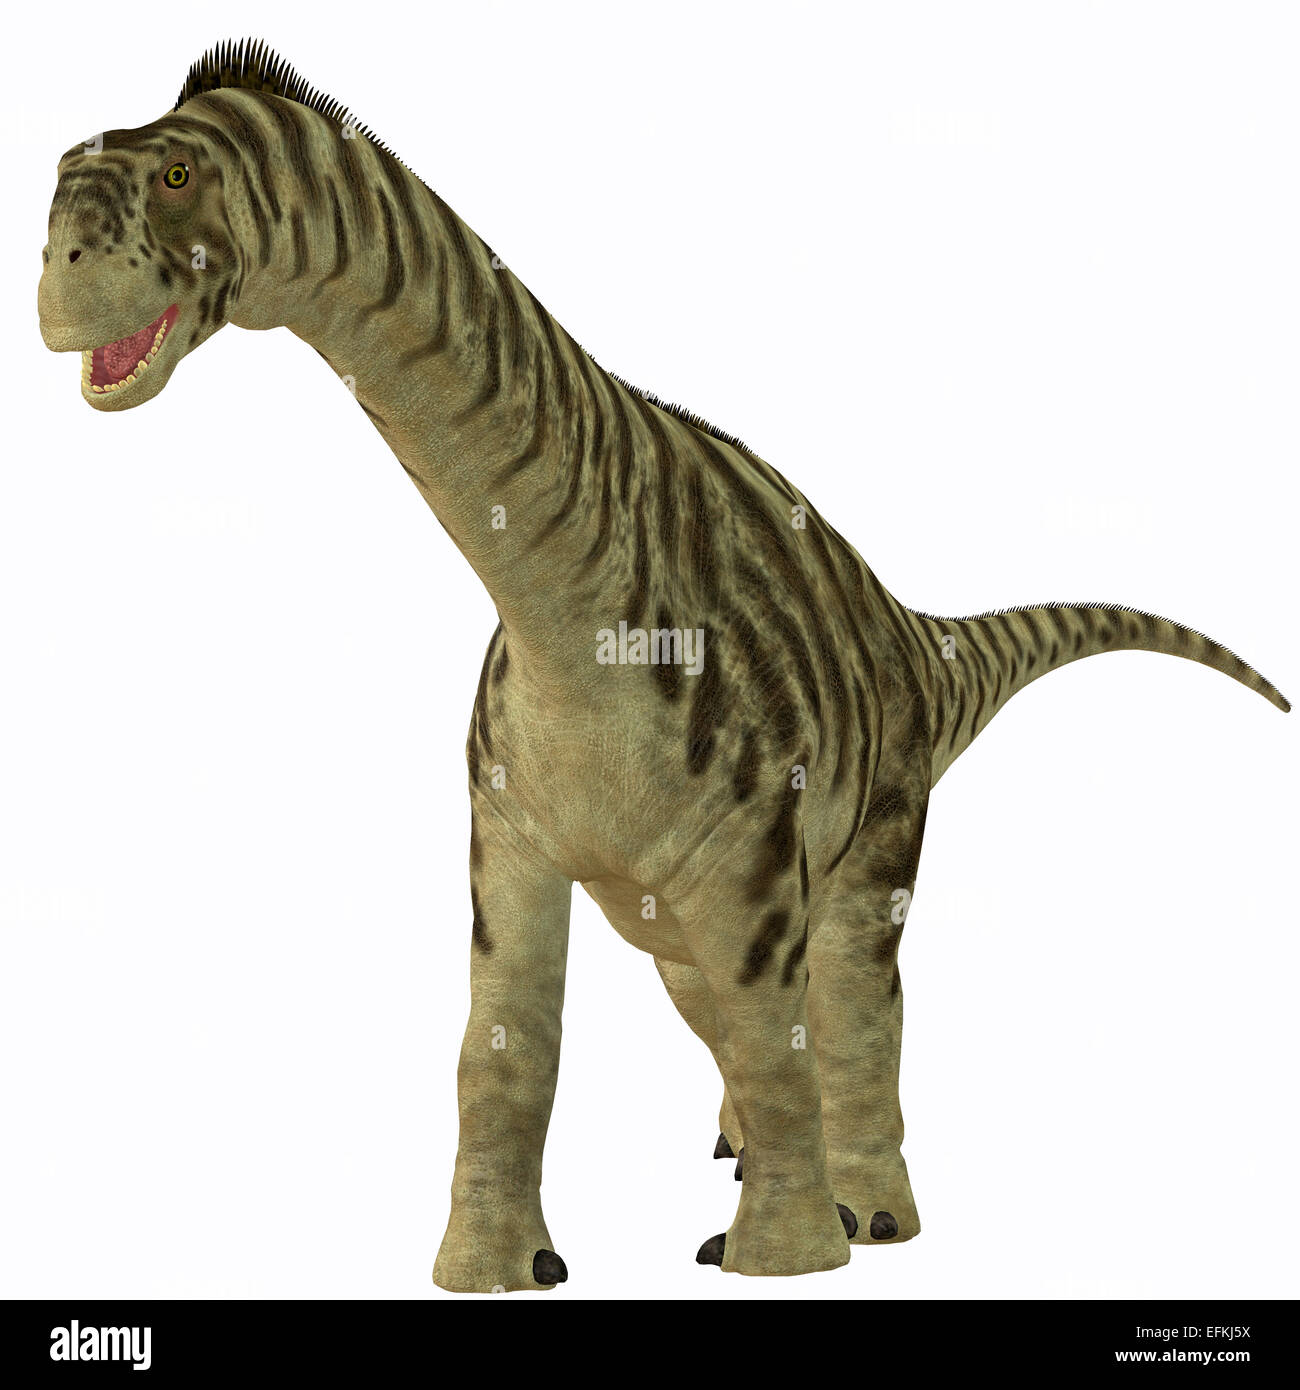 Camarasaurus was a sauropod herbivore dinosaur that lived in the Jurassic Era of North America. - Stock Image